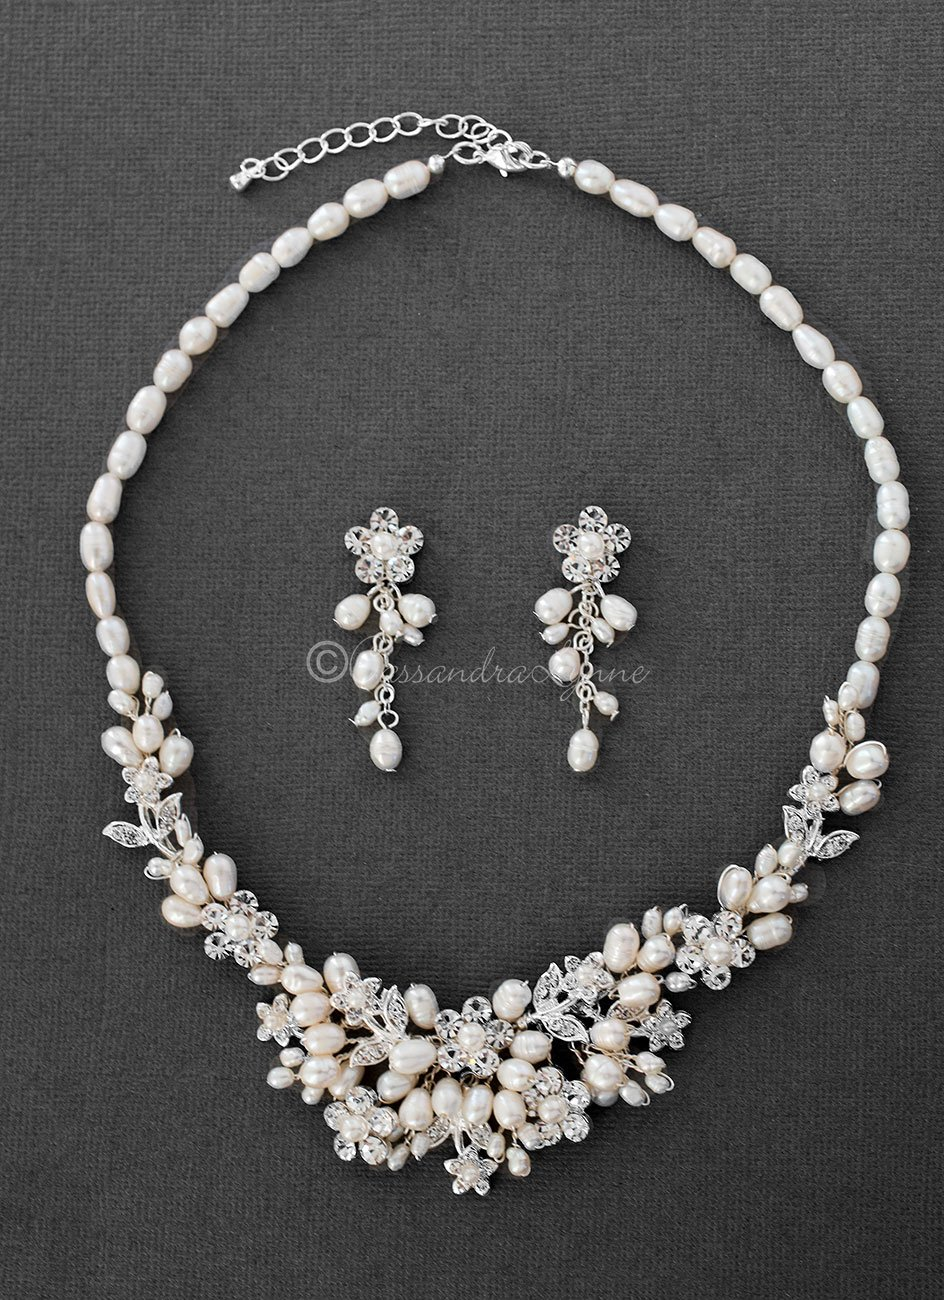 Crystal Flowers And Pearls Wedding Necklace Set Wedding Accessories Jewelry Wedding Necklace Set Pearl Necklace Wedding